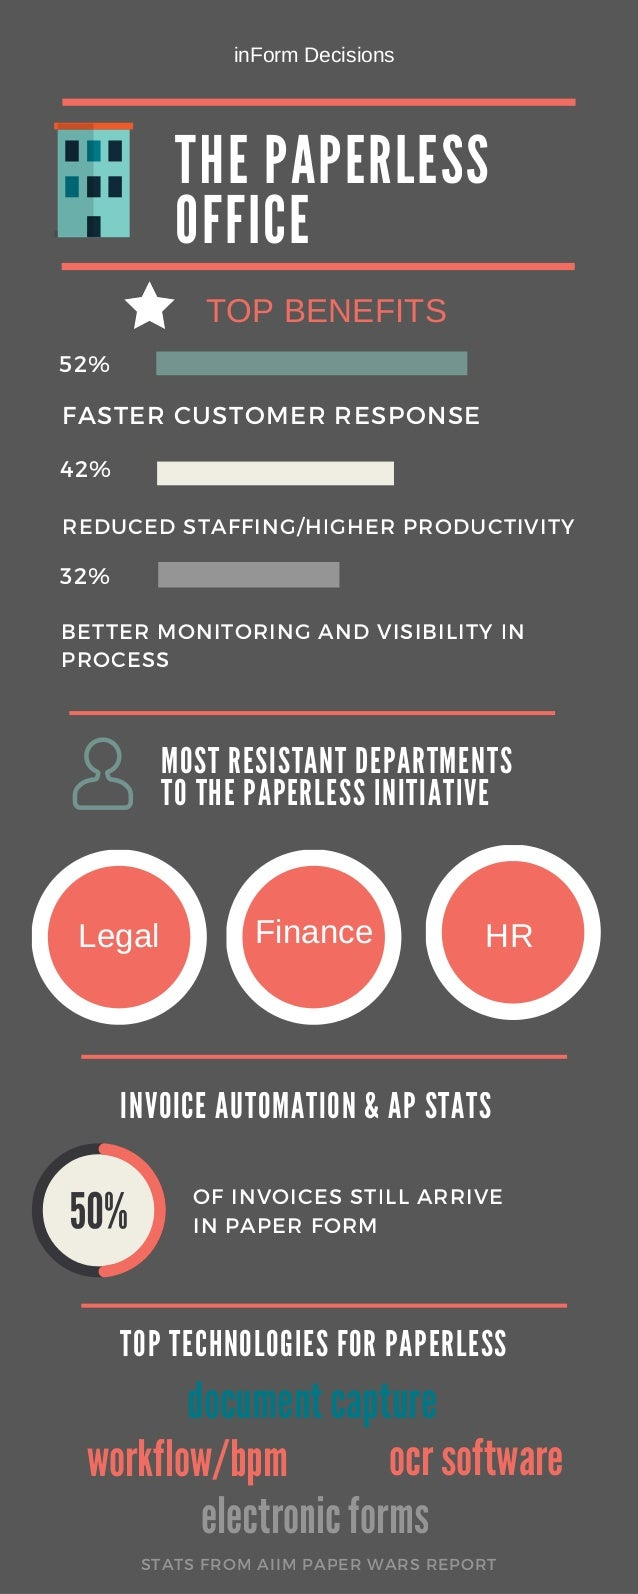 THE PA PERLESS OFFICE FASTER CUSTOMER RESPONSE REDUCED STAFFING/HIGHER PRODUCTIVITY BETTER MONITORING AND VISIBILITY IN PR...